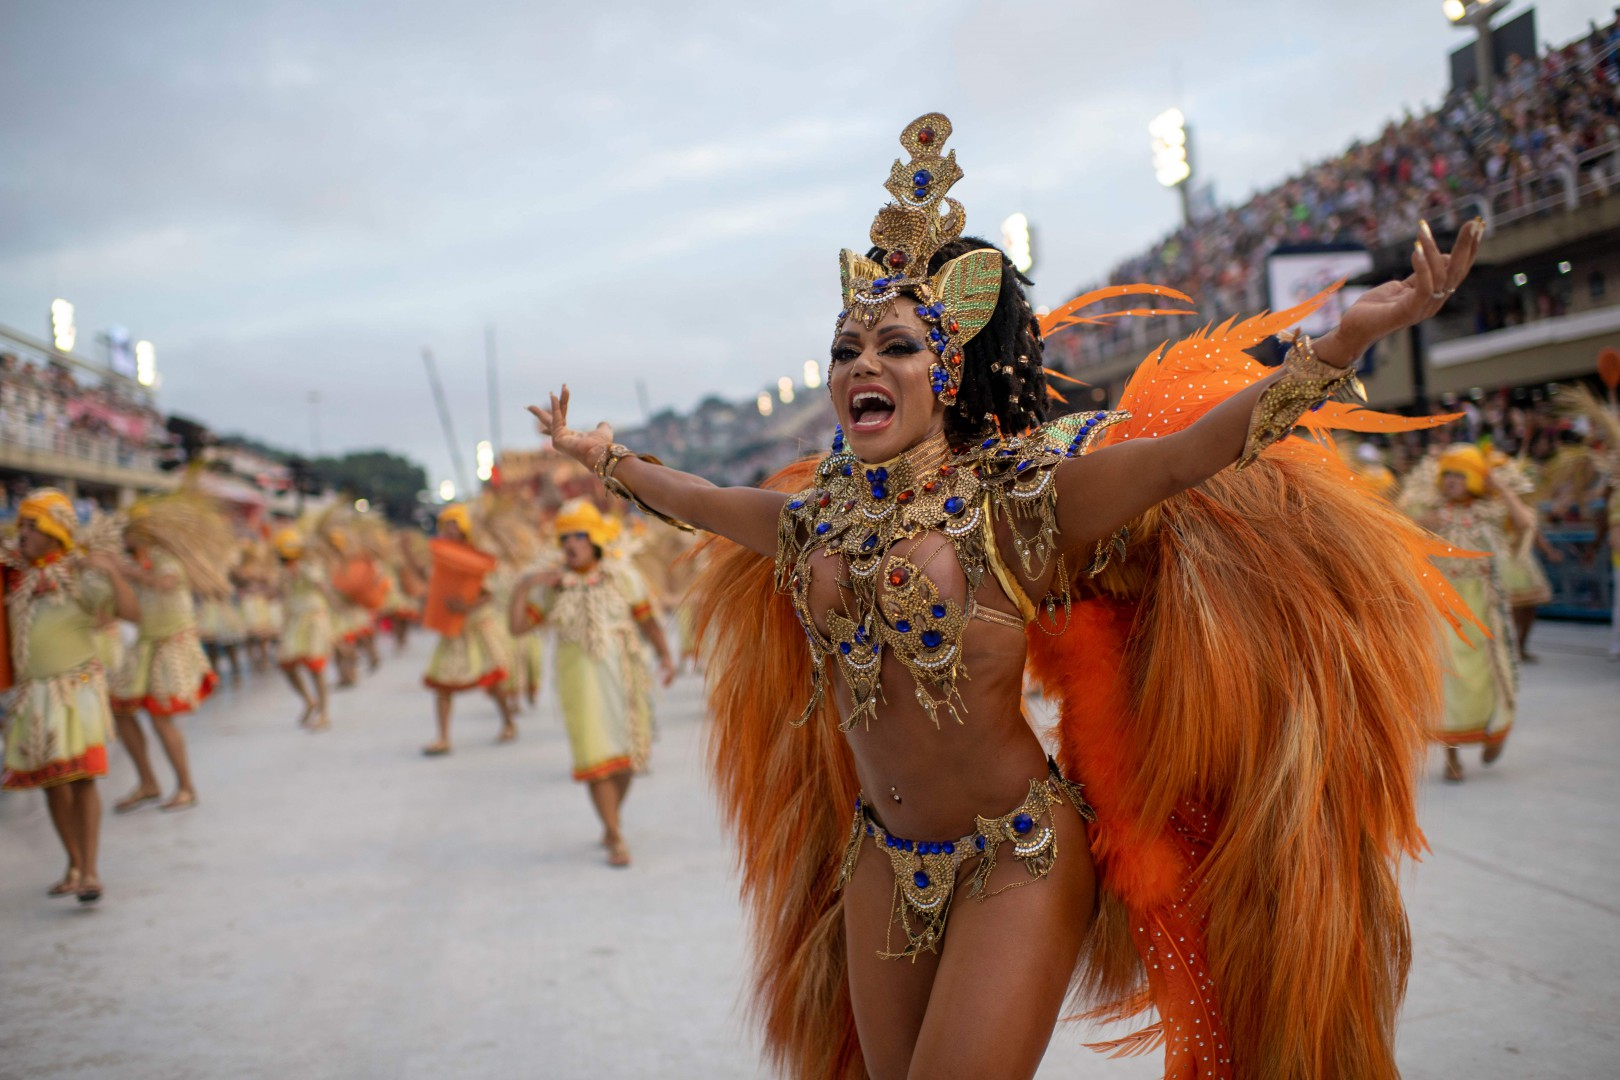 Members of Unidos da Tijuca samba school perform during the first night of Rio's Carnival at the Sambadrome in Rio de Janeiro on March 4, 2019. (Photo by Mauro Pimentel / AFP)